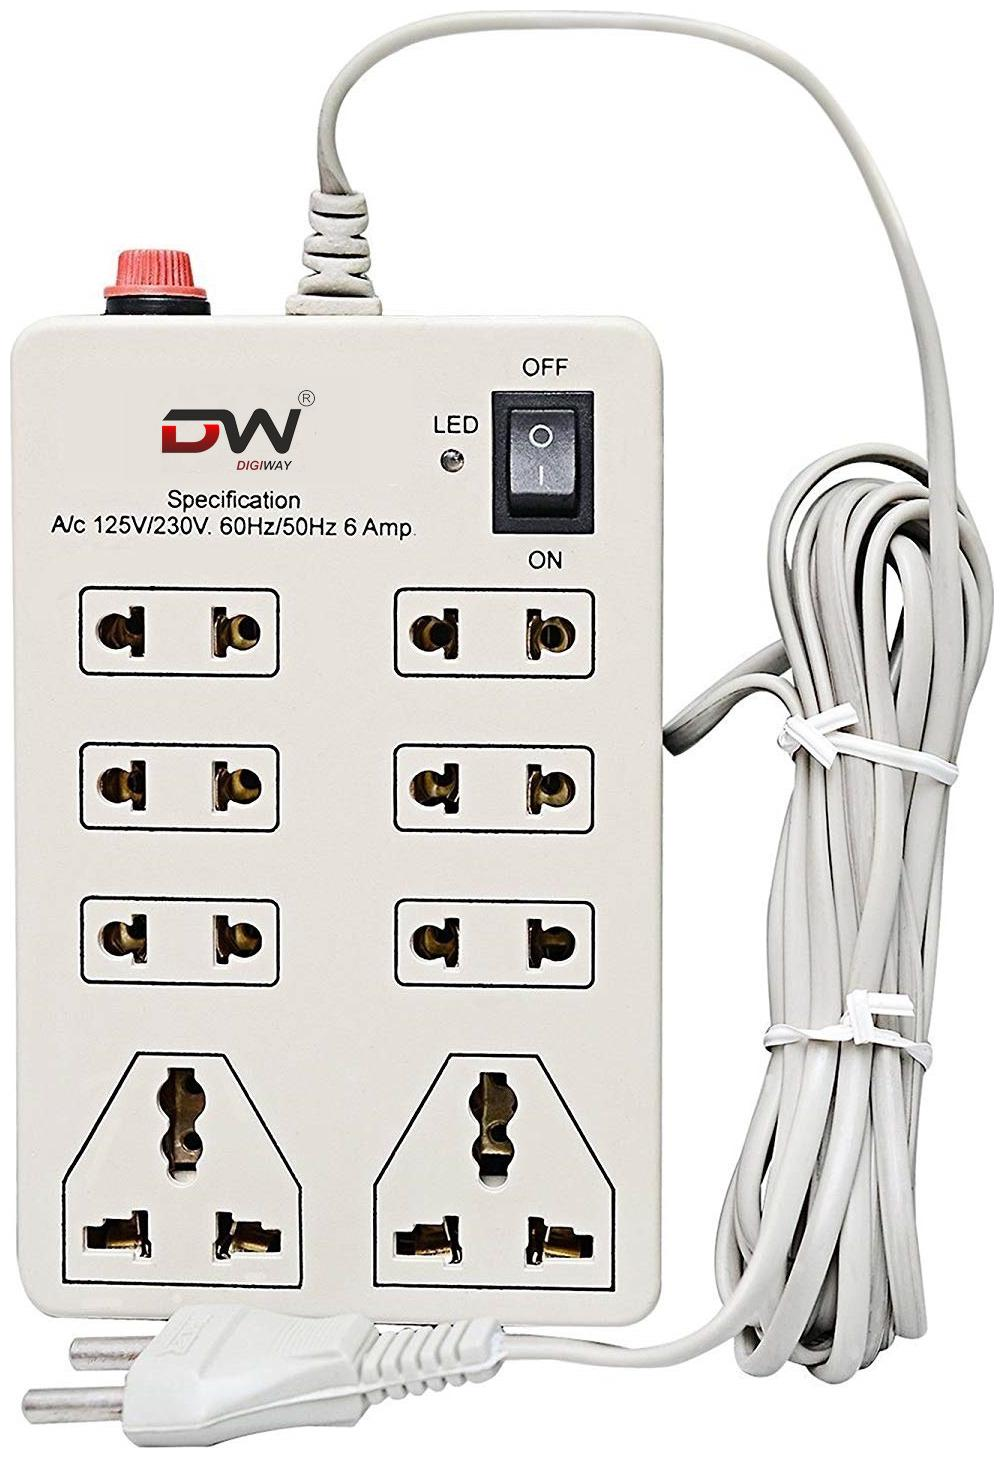 Digiway 8+1 Mini Extension Board,6 AMP Multi plug point Extension Cord- 2.4...